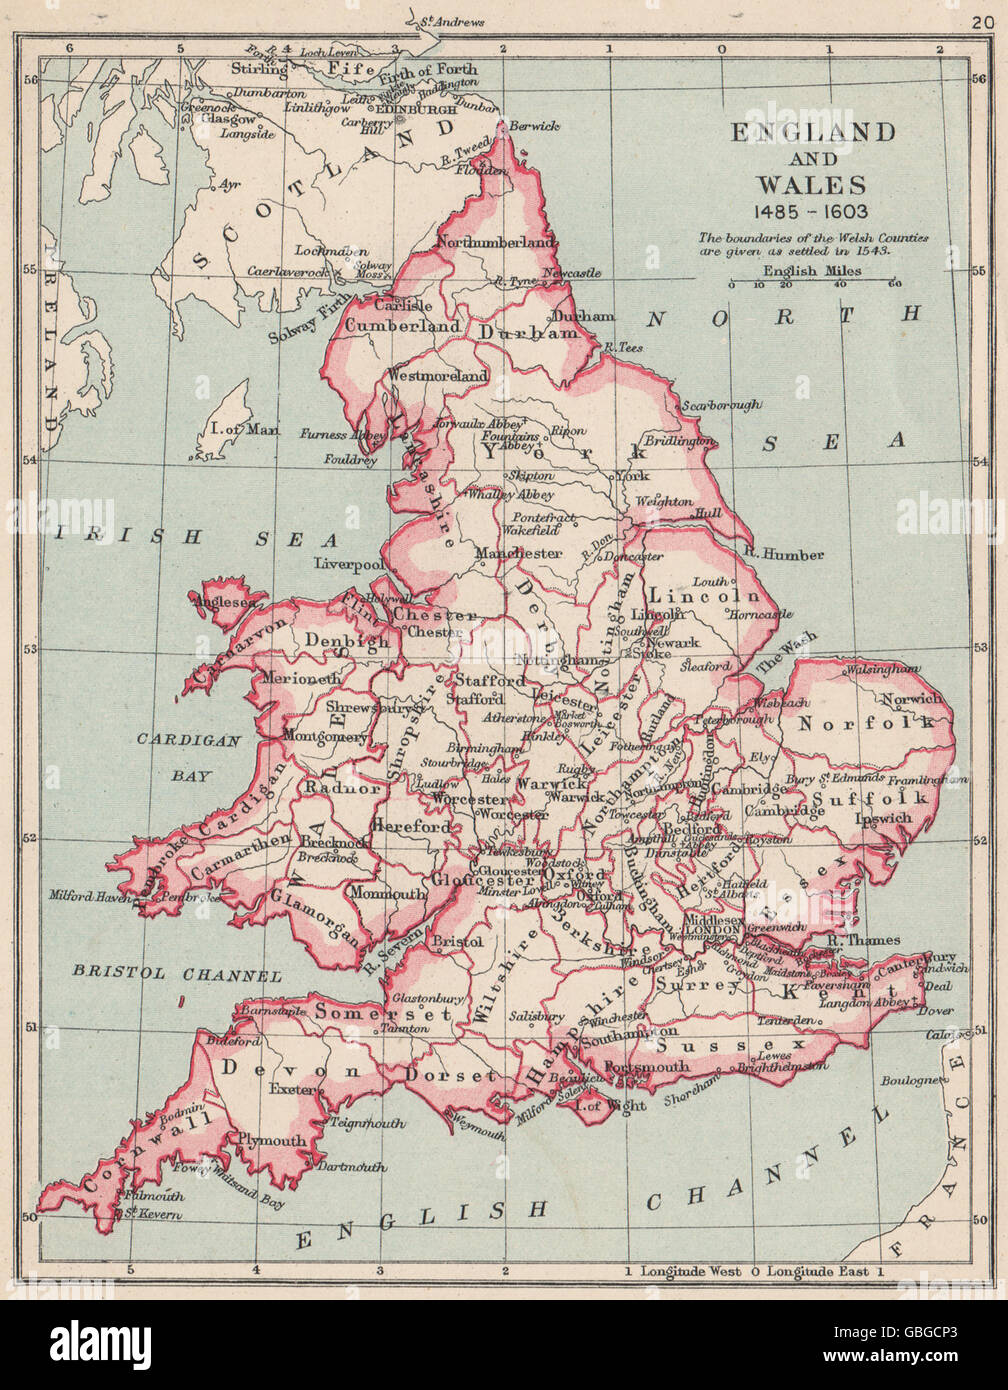 Map Of England And Wales Showing Counties.England And Wales 1485 1603 Showing Counties Towns 1907